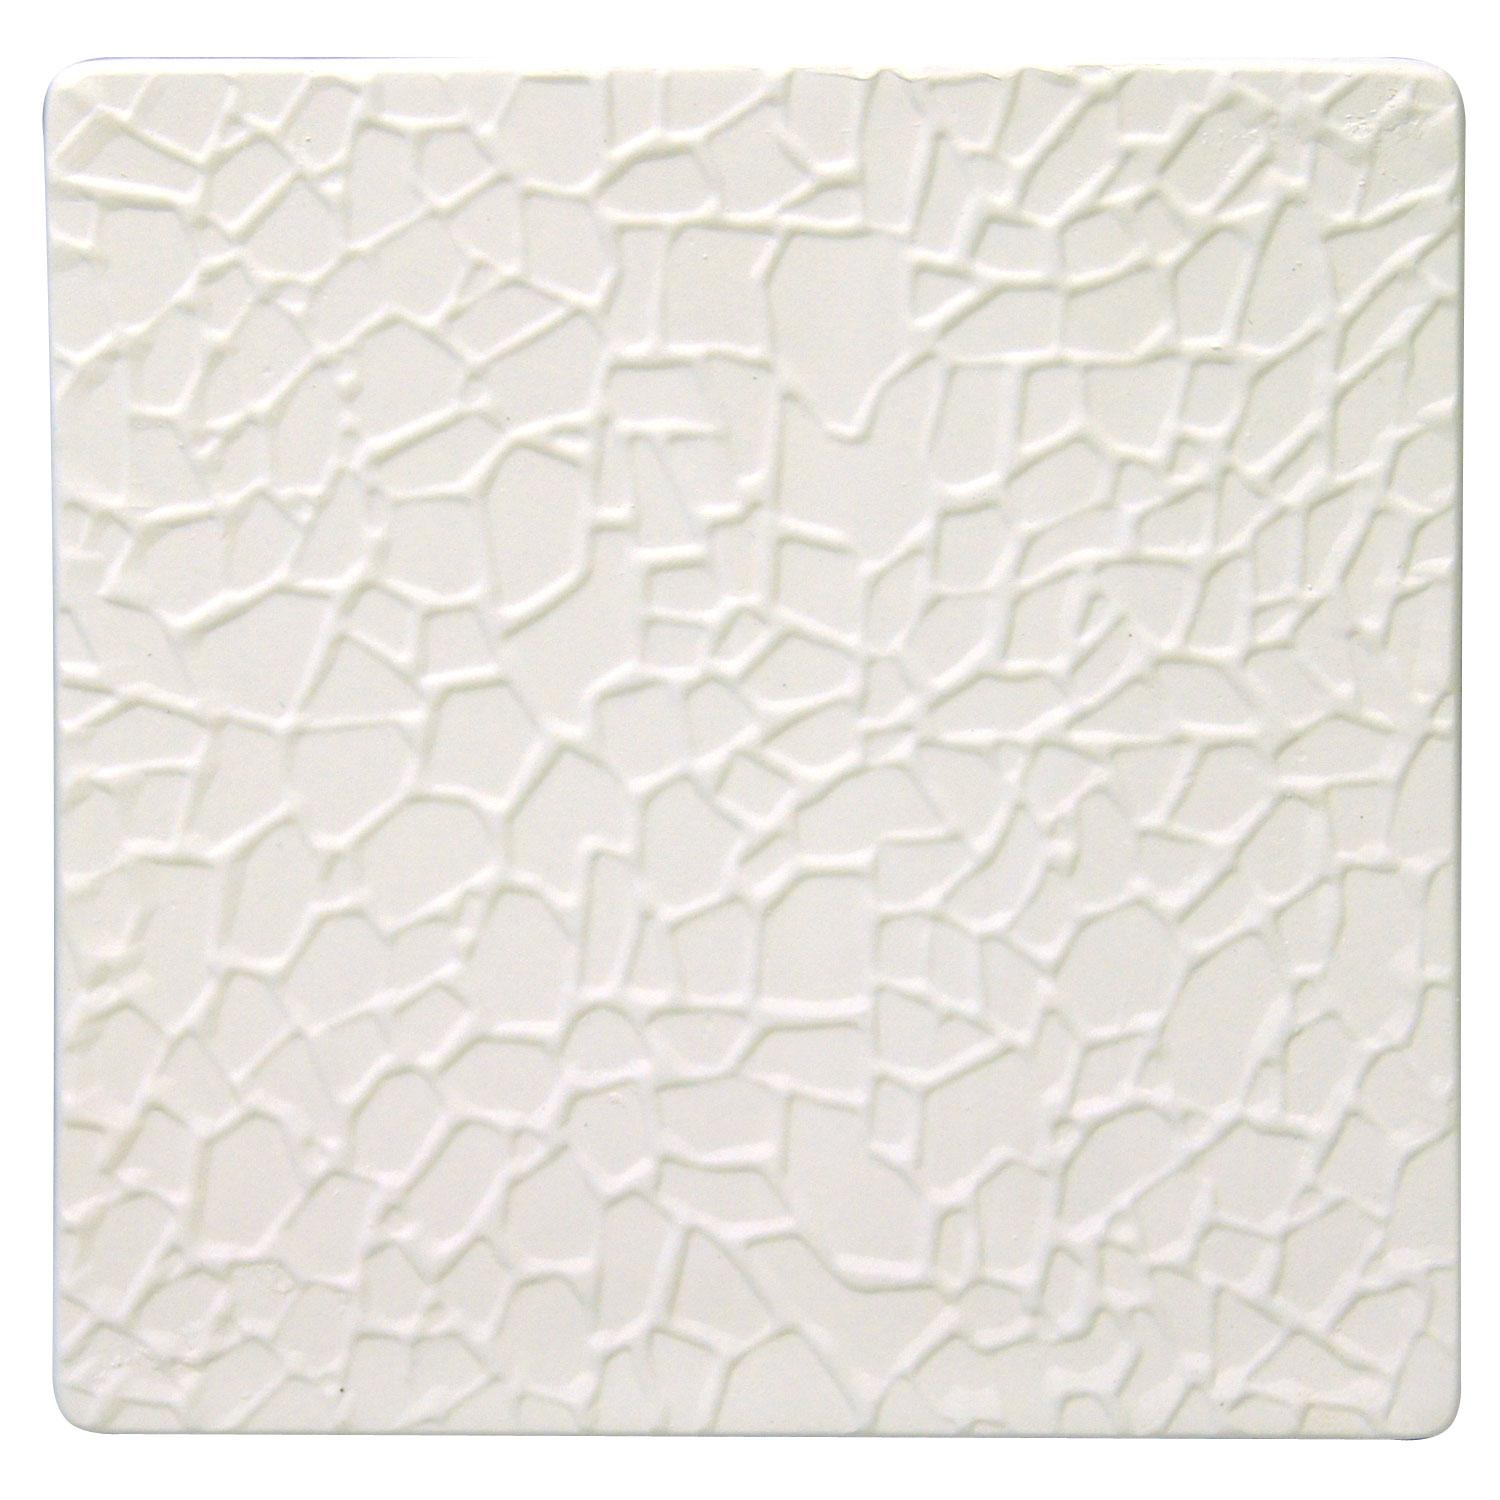 Mosaic ceramic texture tile mold for Glass tile texture